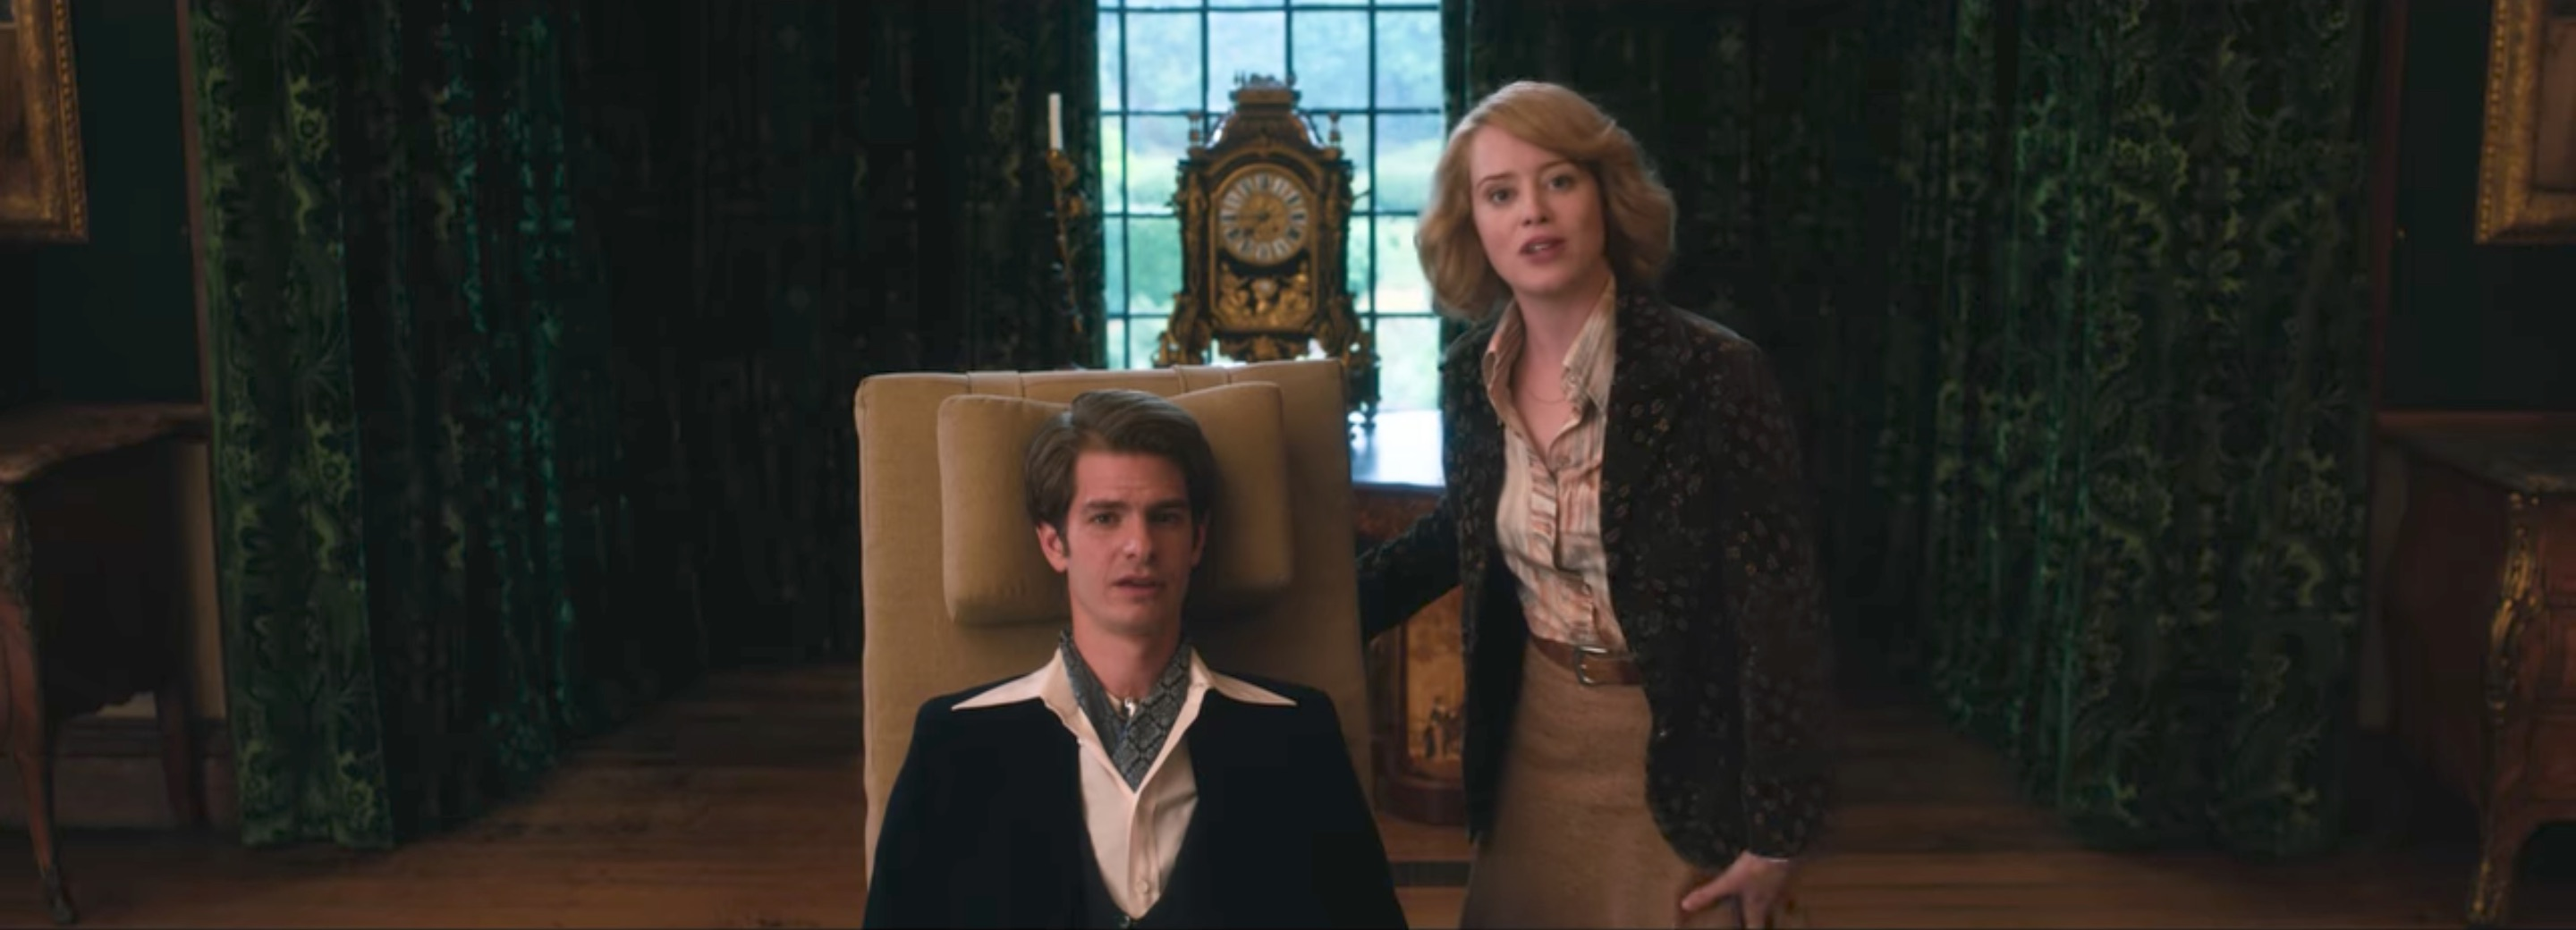 ANDREW GARFIELD VE CLAIRE FOY'LU BREATHE'DEN İLK FRAGMAN